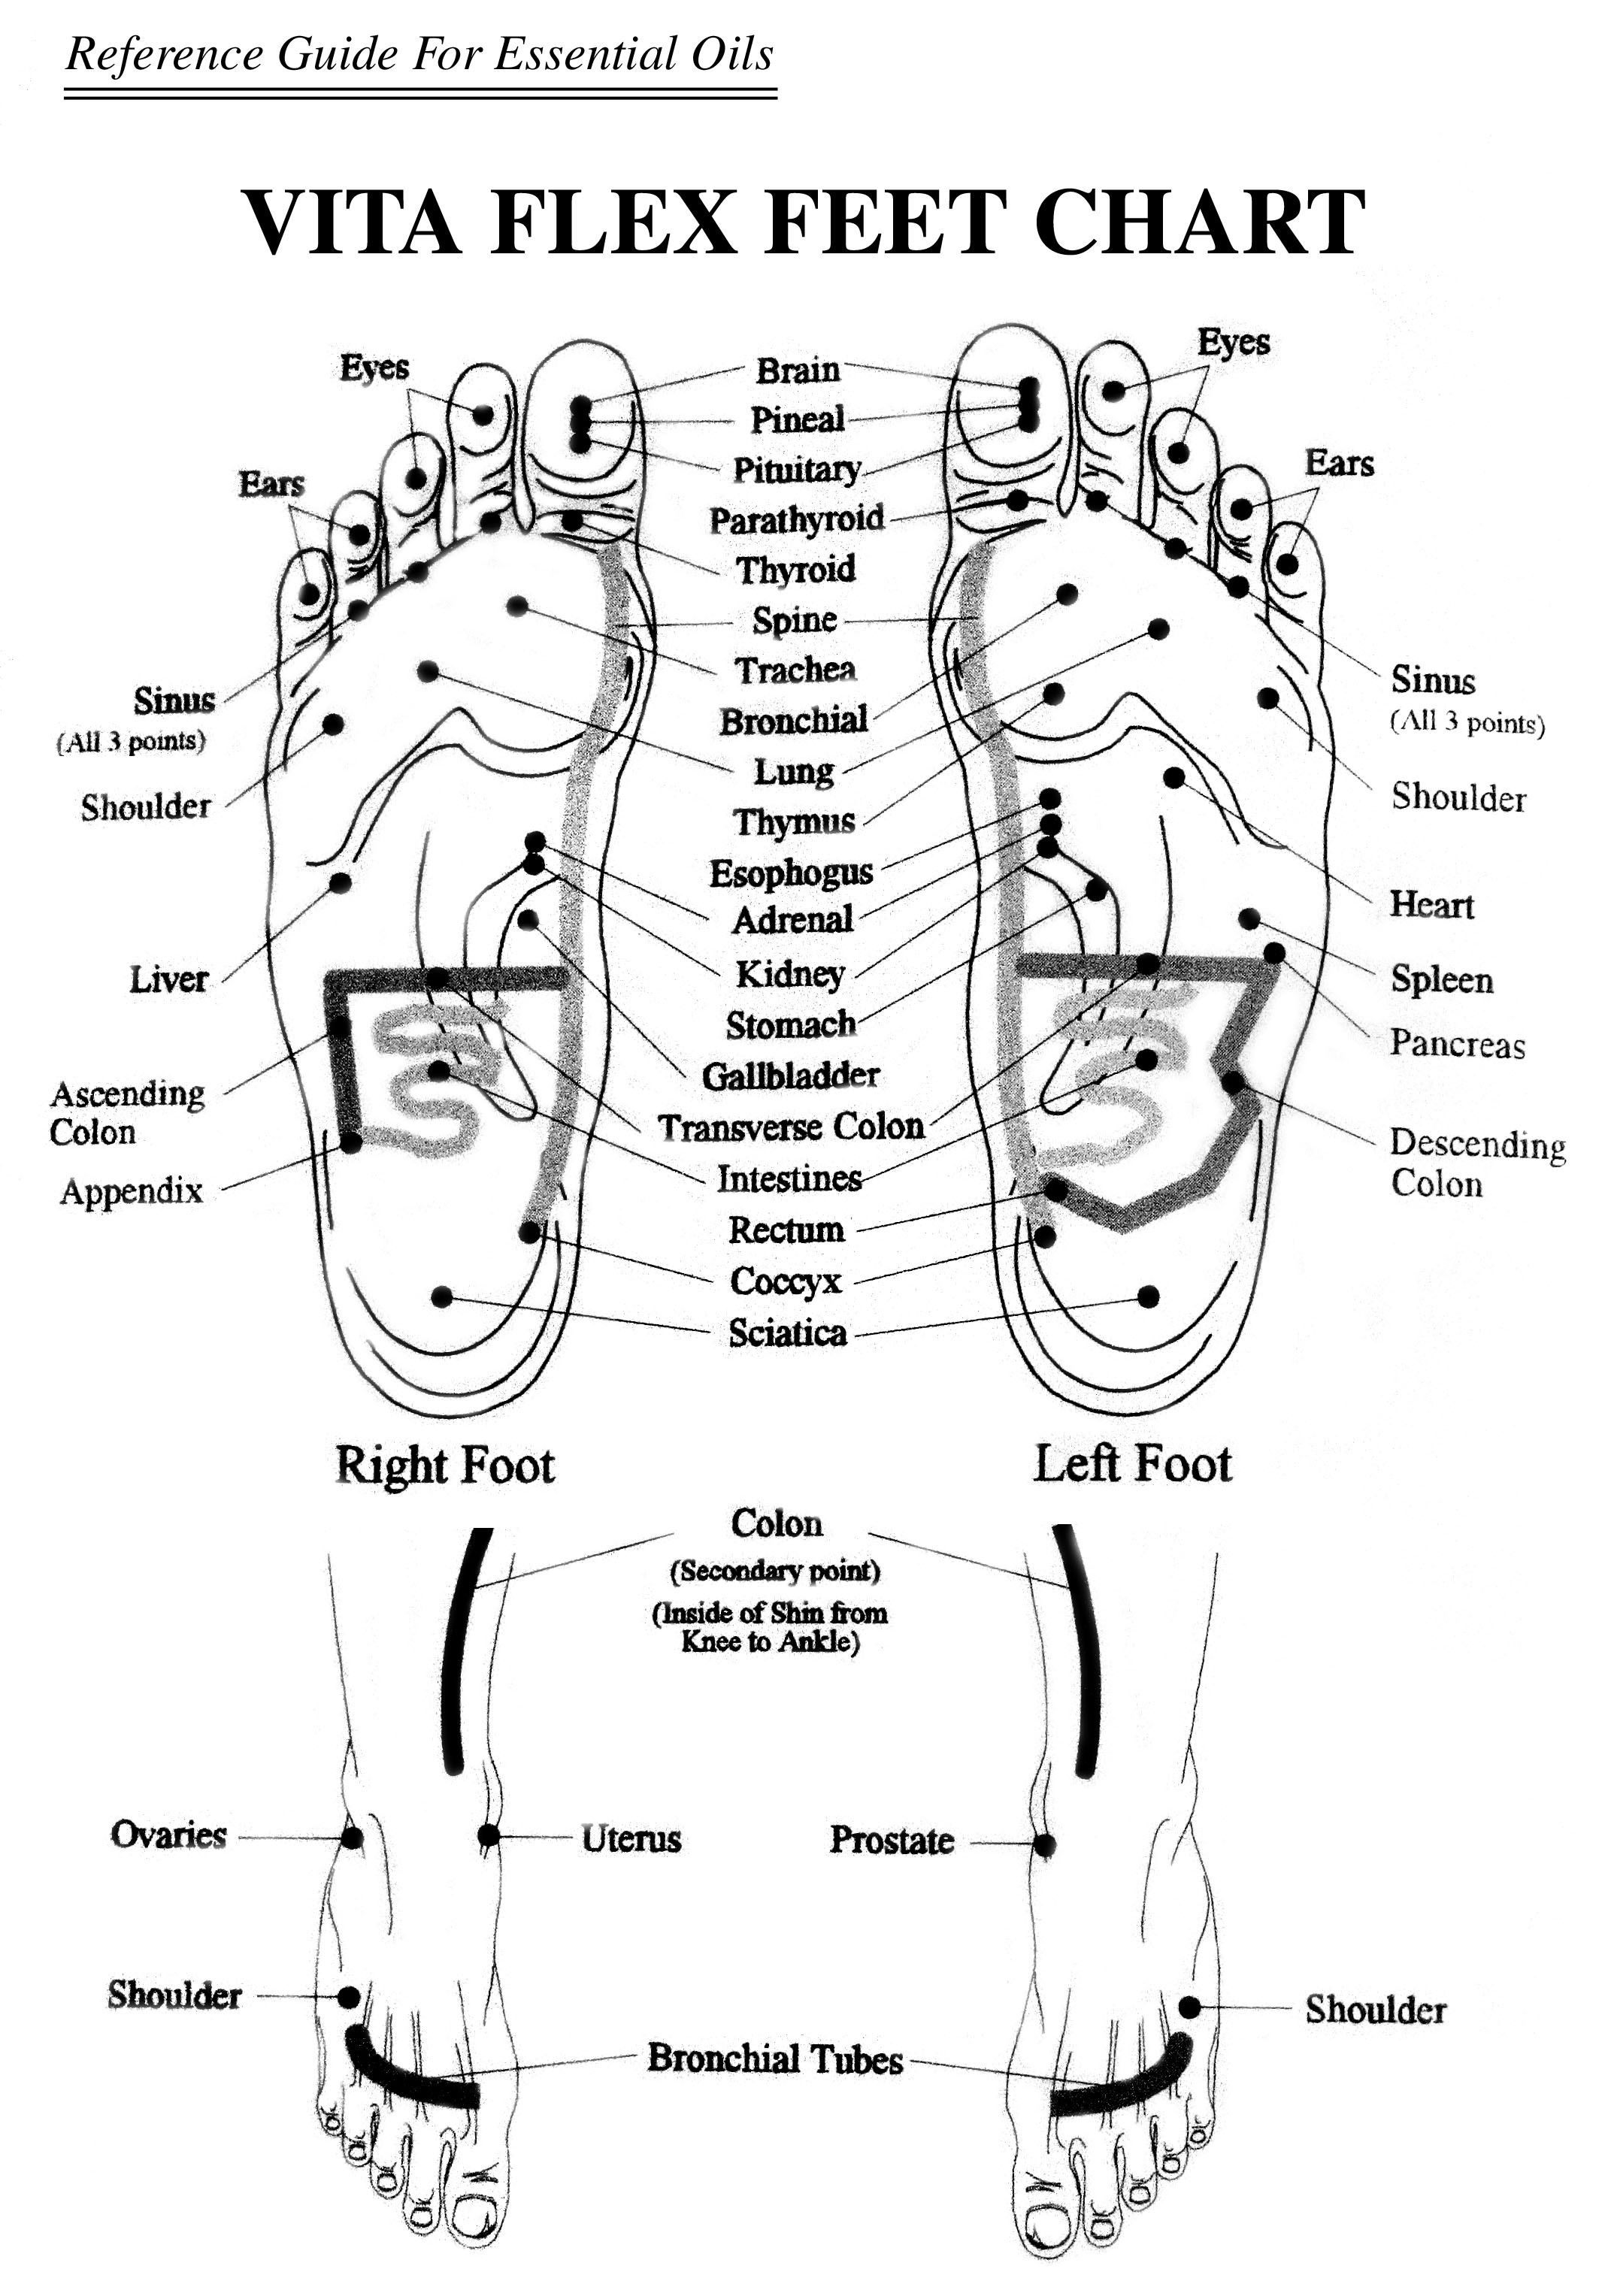 Foot Chart For Reflexolgy And Essential Oil Reference